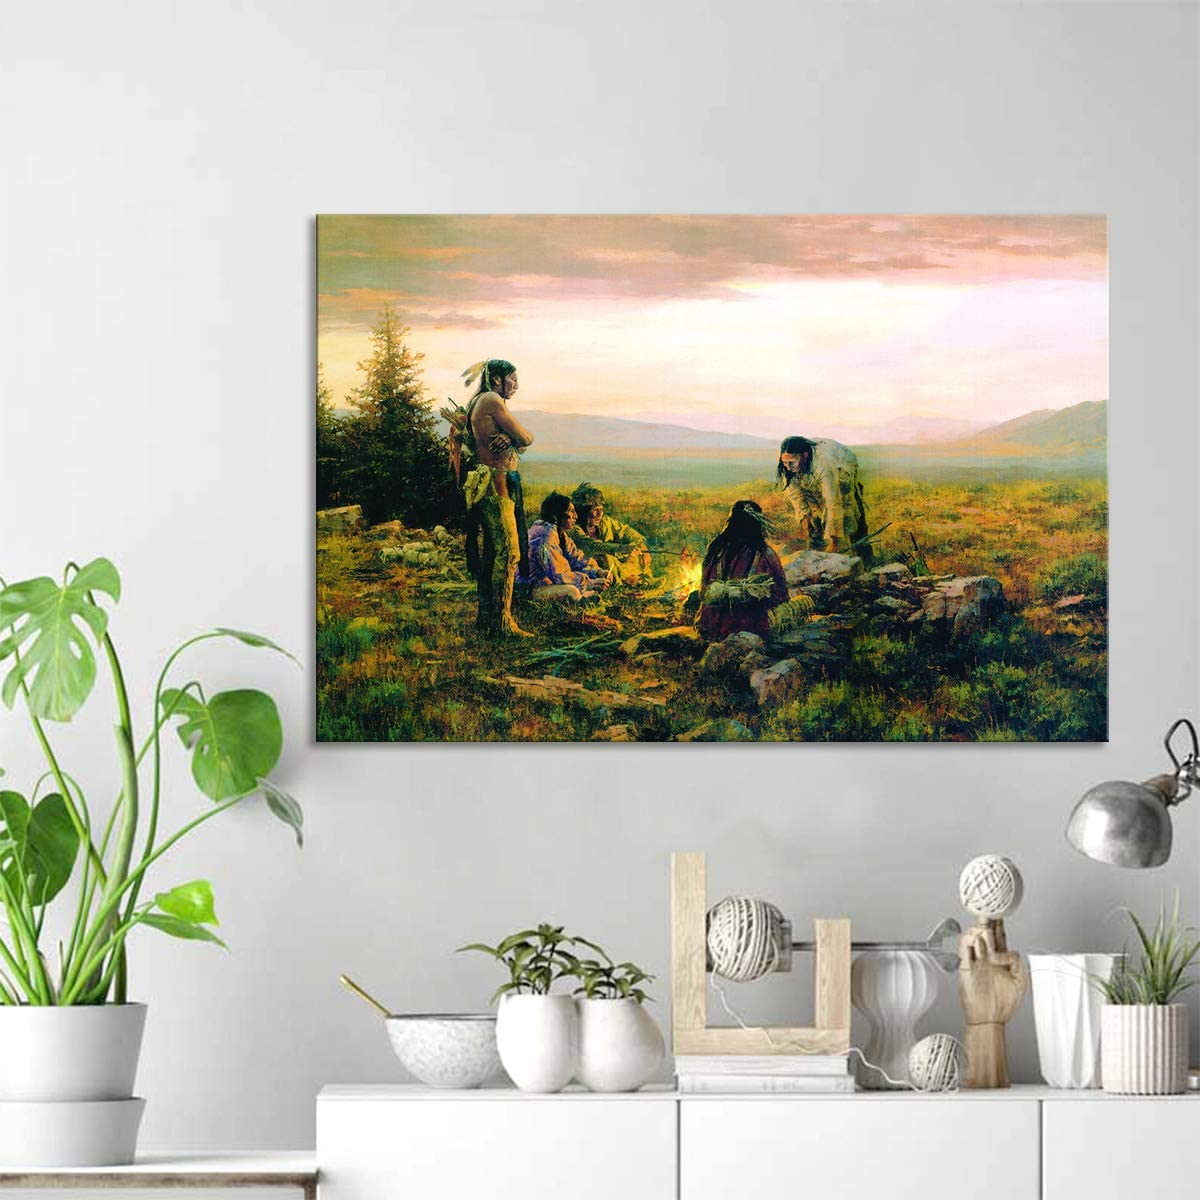 Indian Paintings Printed on Canvas Posters and Prints on Canvas Painting  Decorative Wall Art Picture for Restaurant Home Décor 10inx10in,Framed